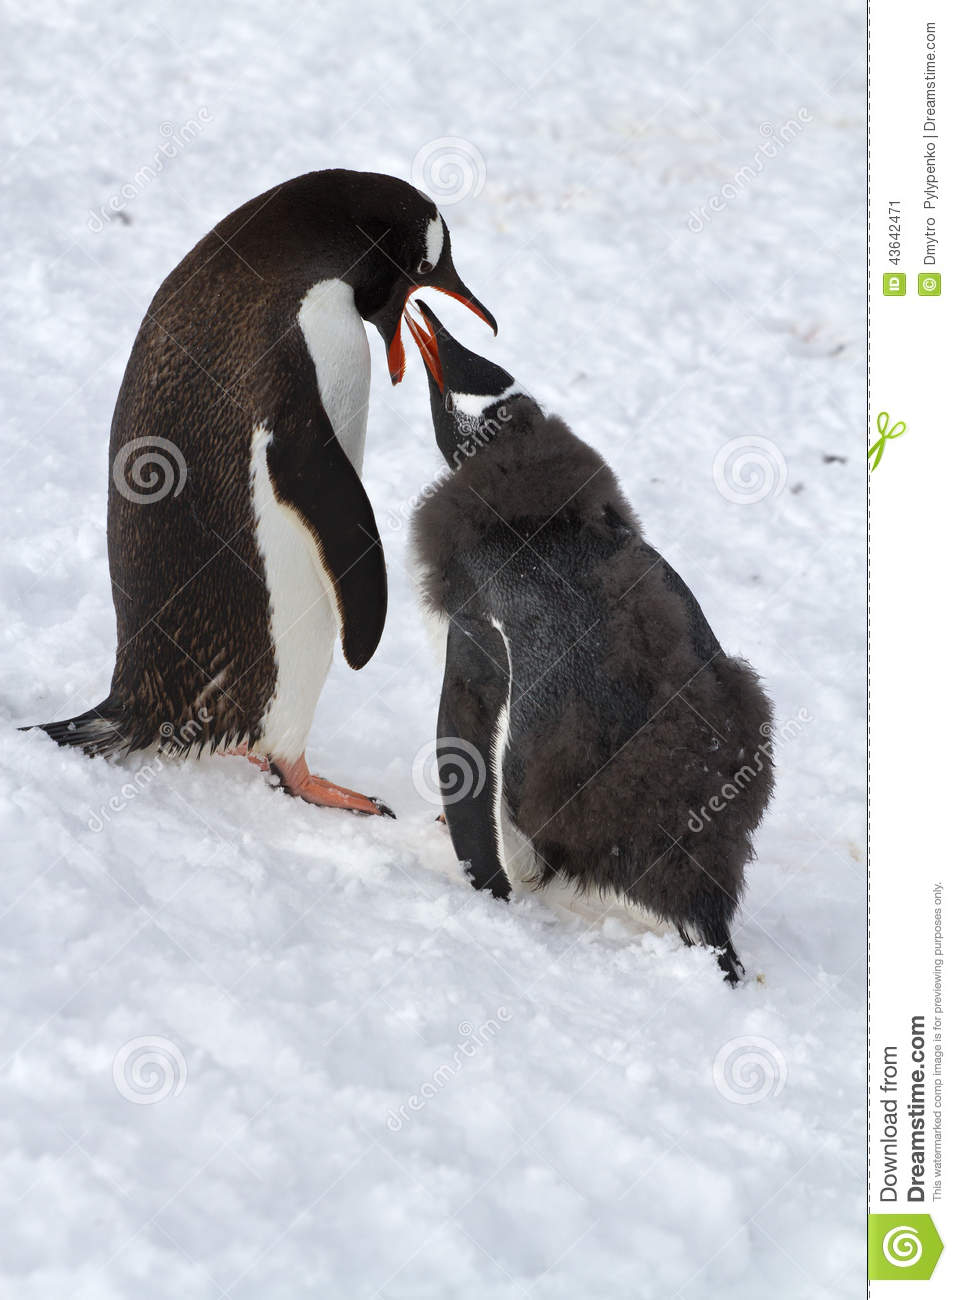 Female Gentoo penguins that feeds the chick standing on